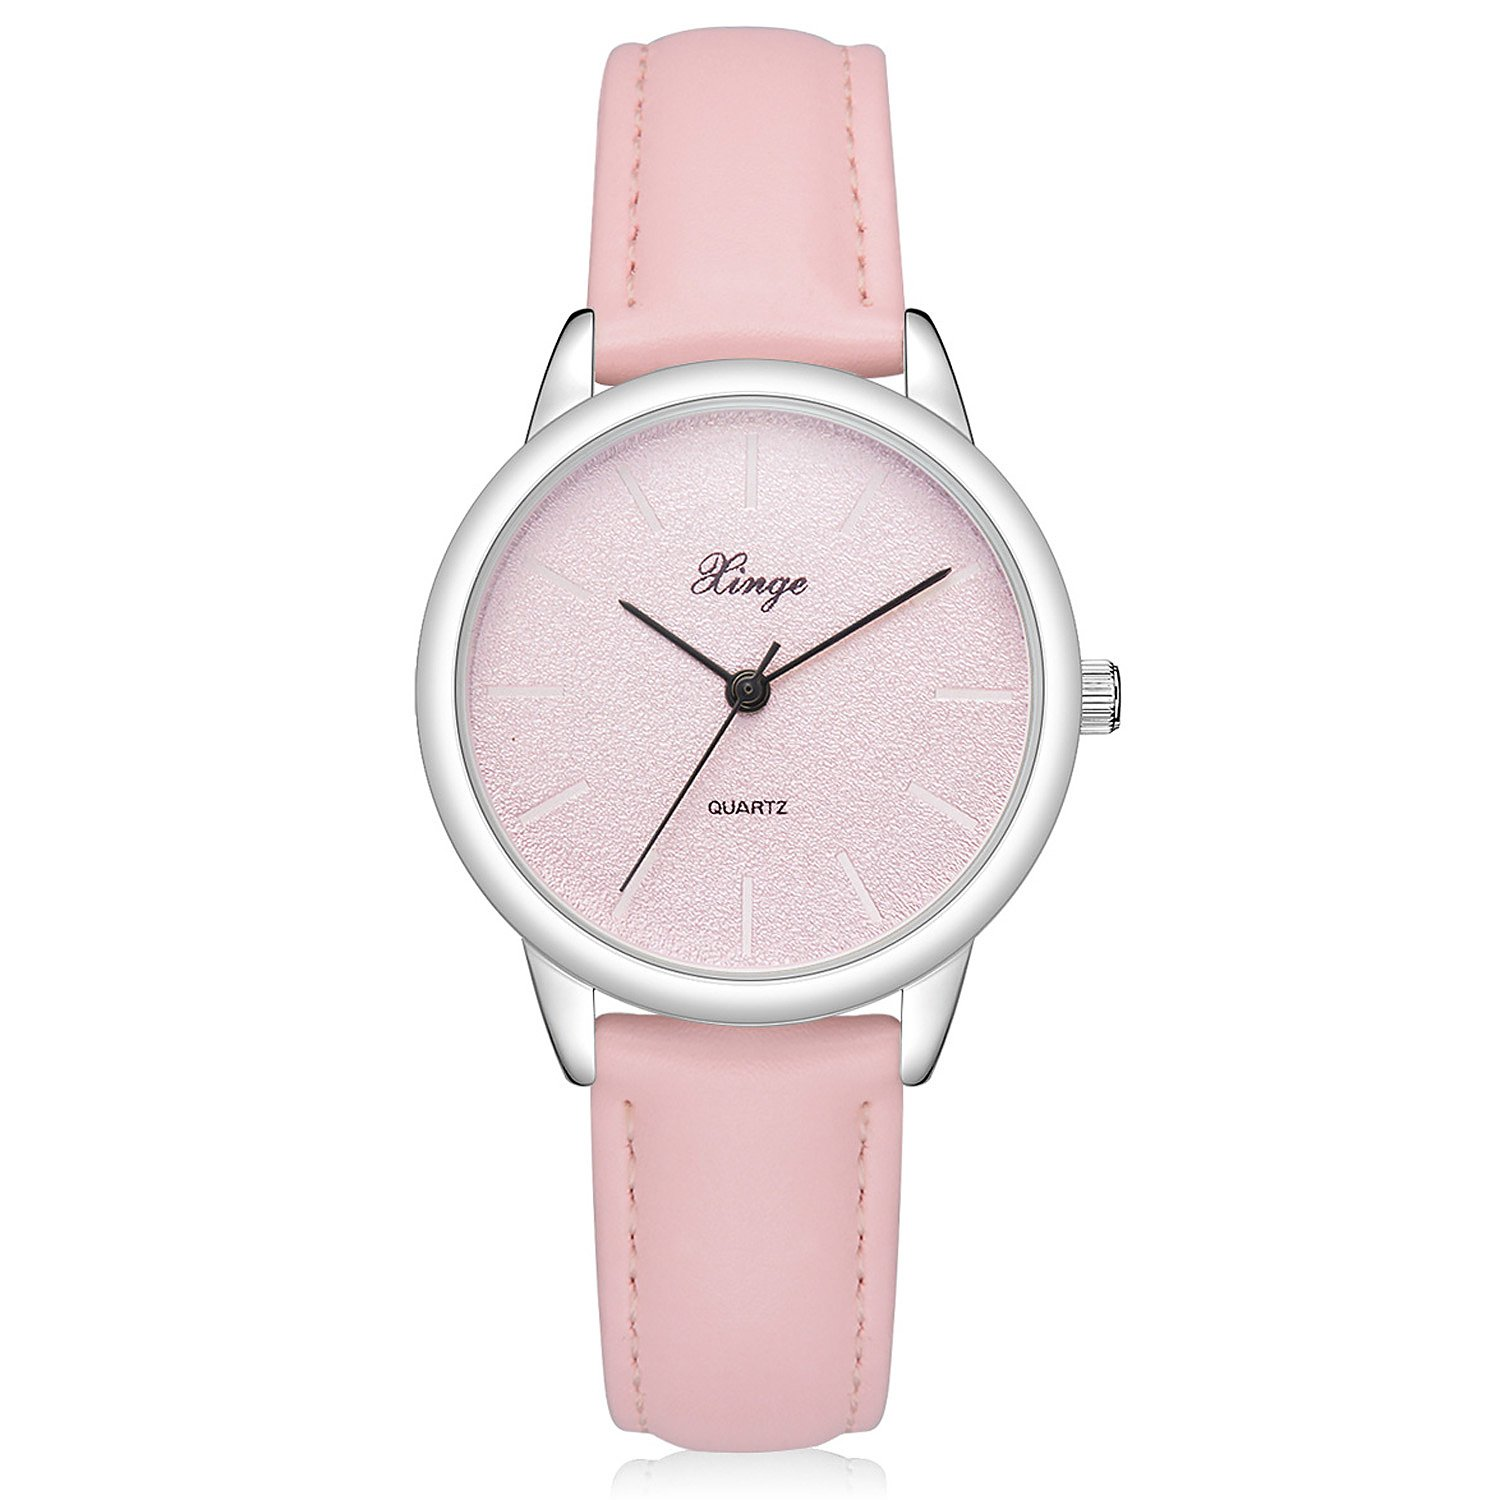 Womens Retro Casual Wrist Watch Simple Classic Analog Quartz Leather Band Watches (Pink)